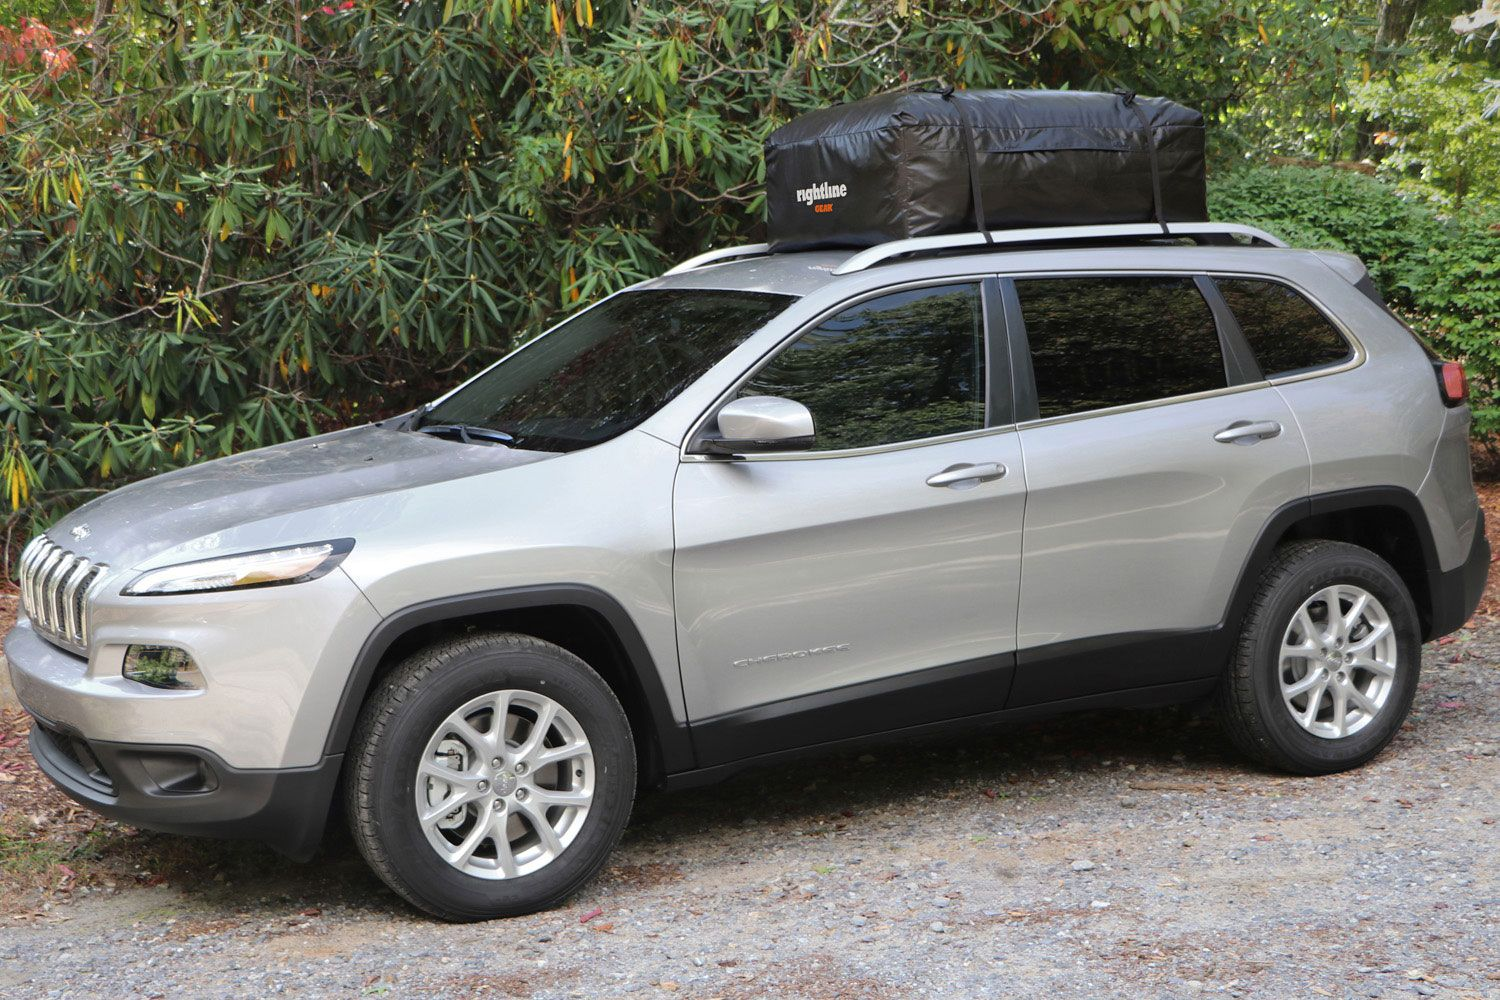 15 cu ft Attaches With or Without Roof Rack Weatherproof Rightline Gear Ace 2 Car Top Carrier